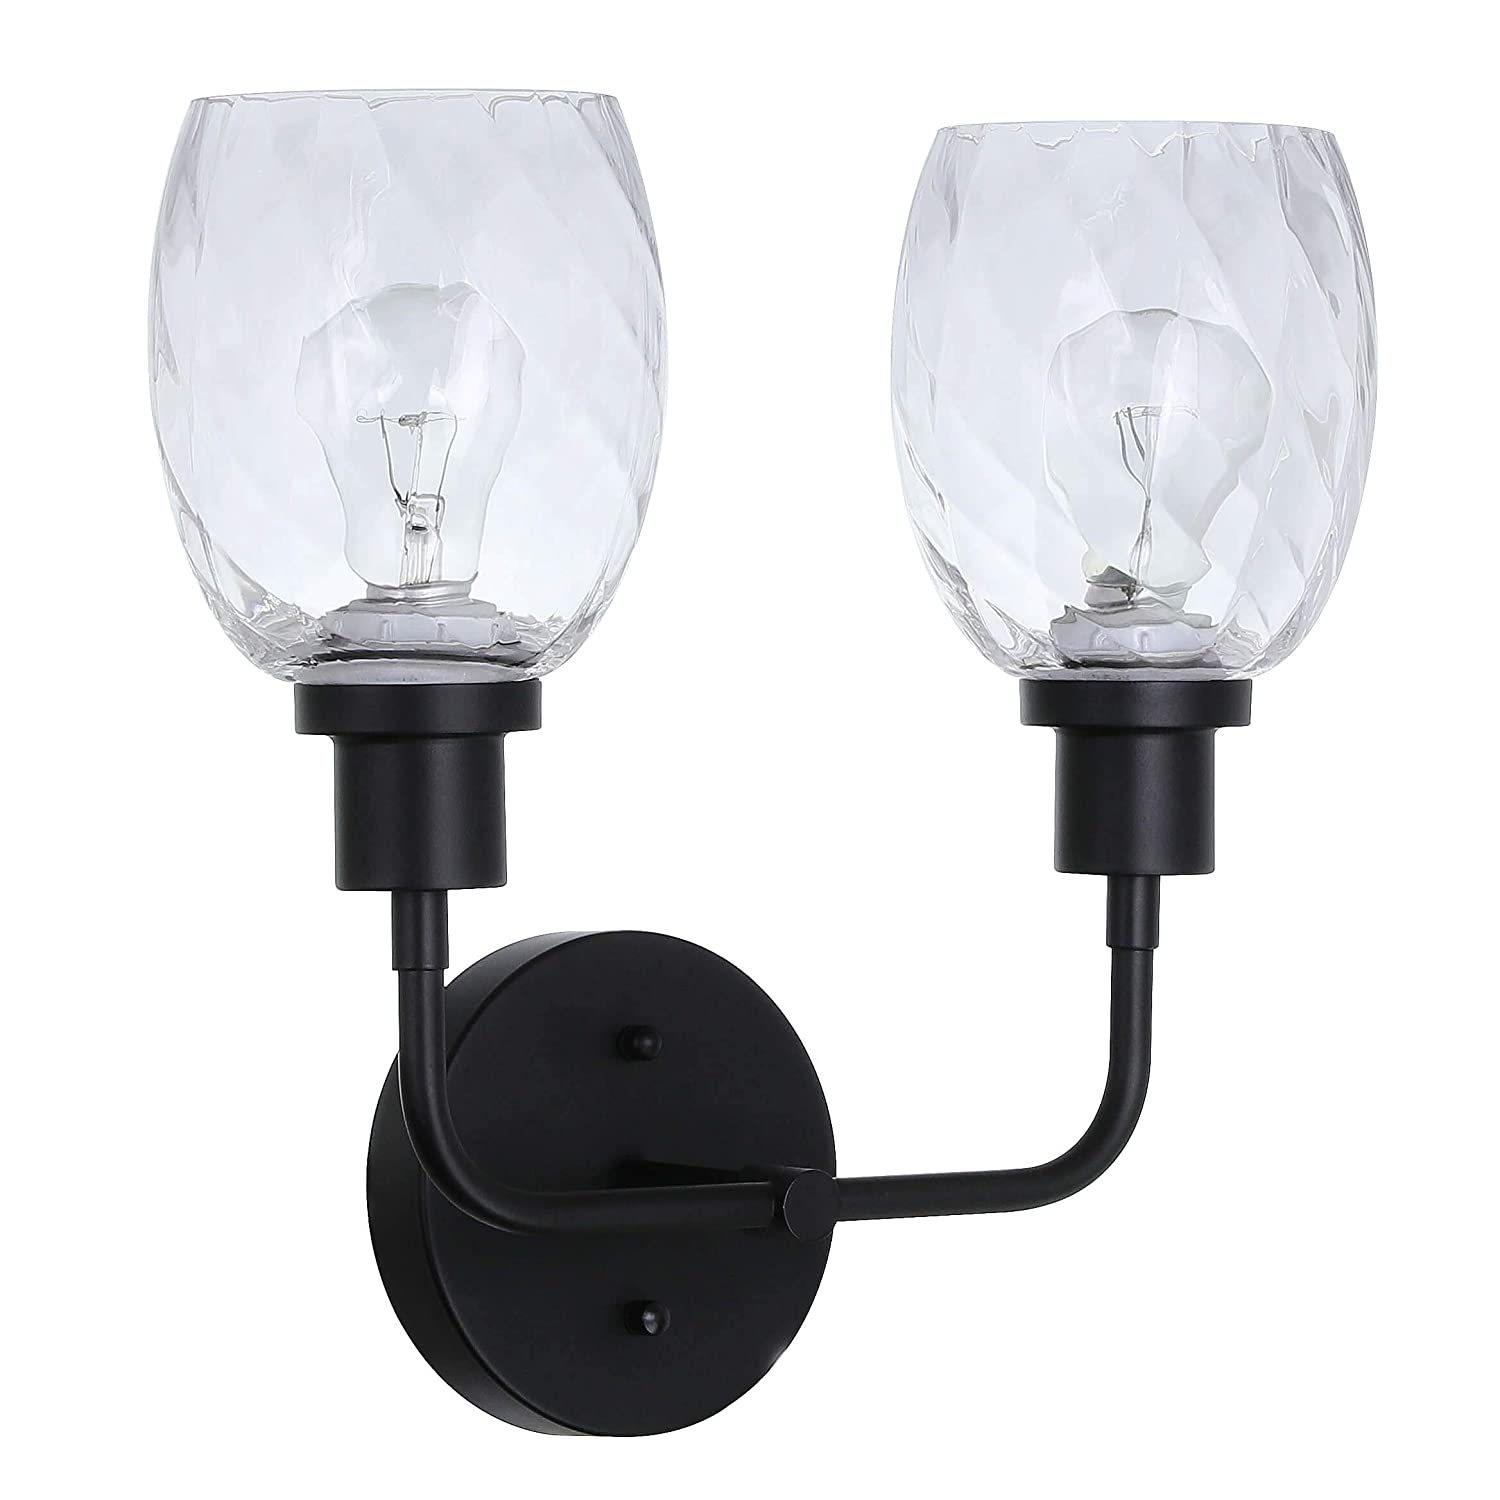 XiNBEi Wall Light 2 Light Wall Lighting with Faceted Glass Modern UP//Down Wall Lamp Matte Black Finish for Bathroom Corridor /& Kitchen XB-W210-2-MBK